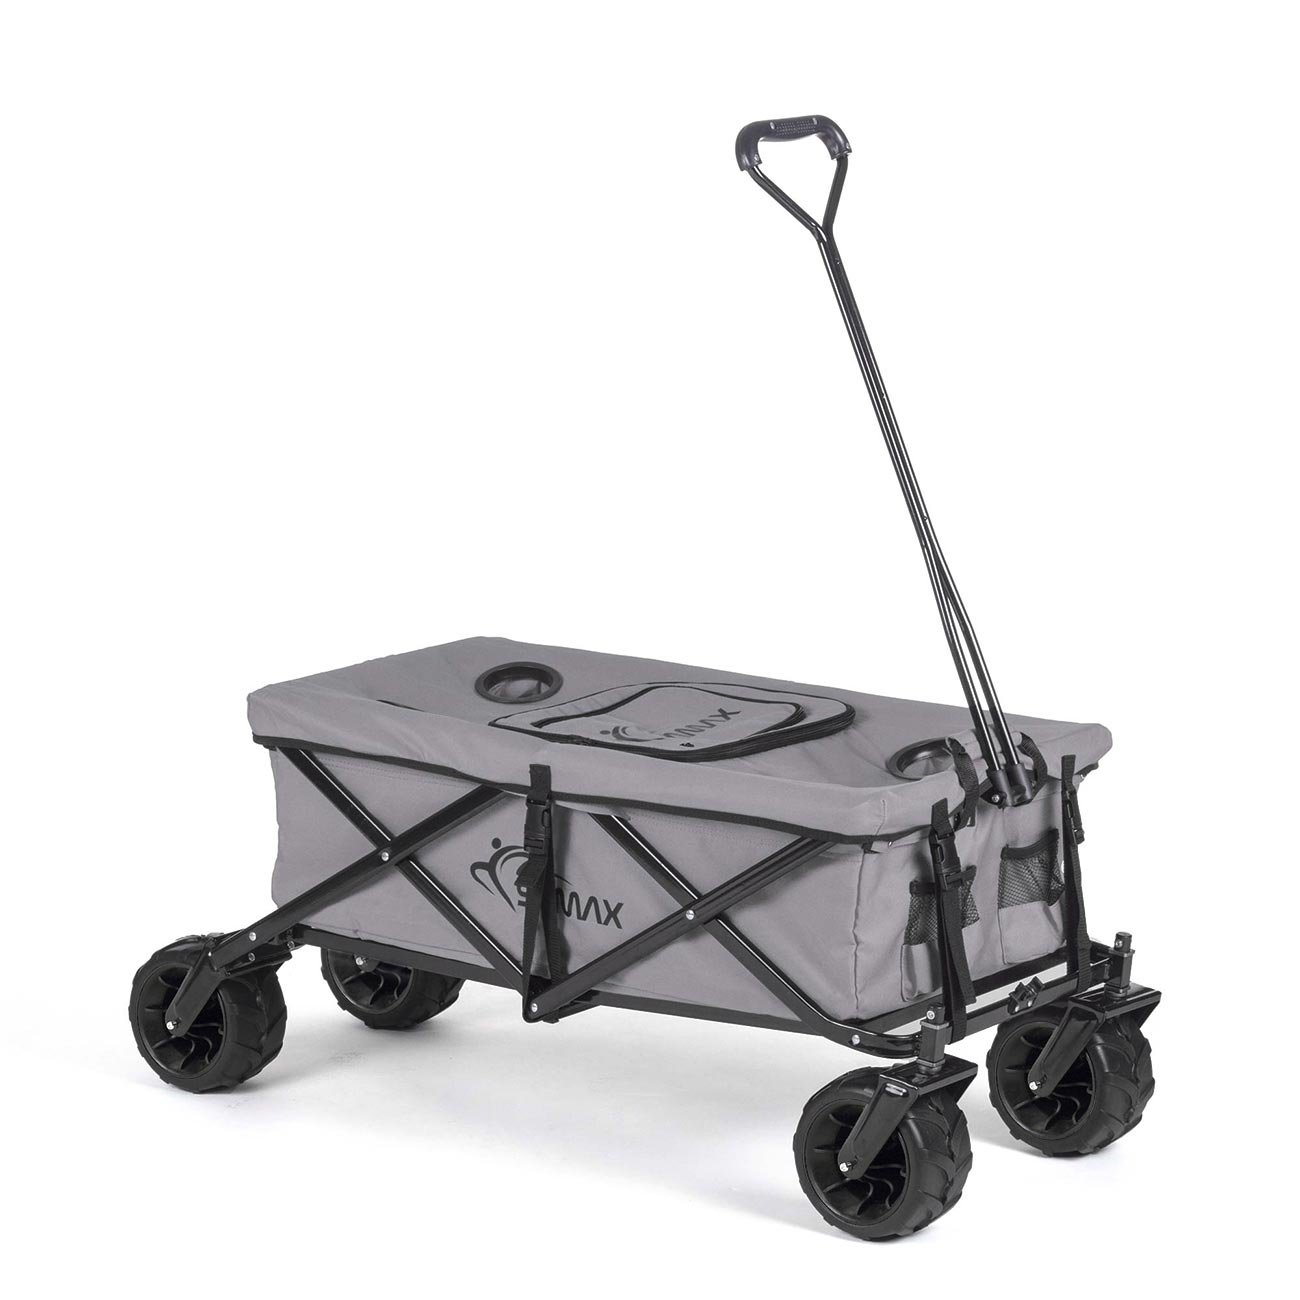 SAMAX Coaster Wagon Garden Trolley Beach Wagon Folding Foldable Hand Cart Trolley Grey - Various designs